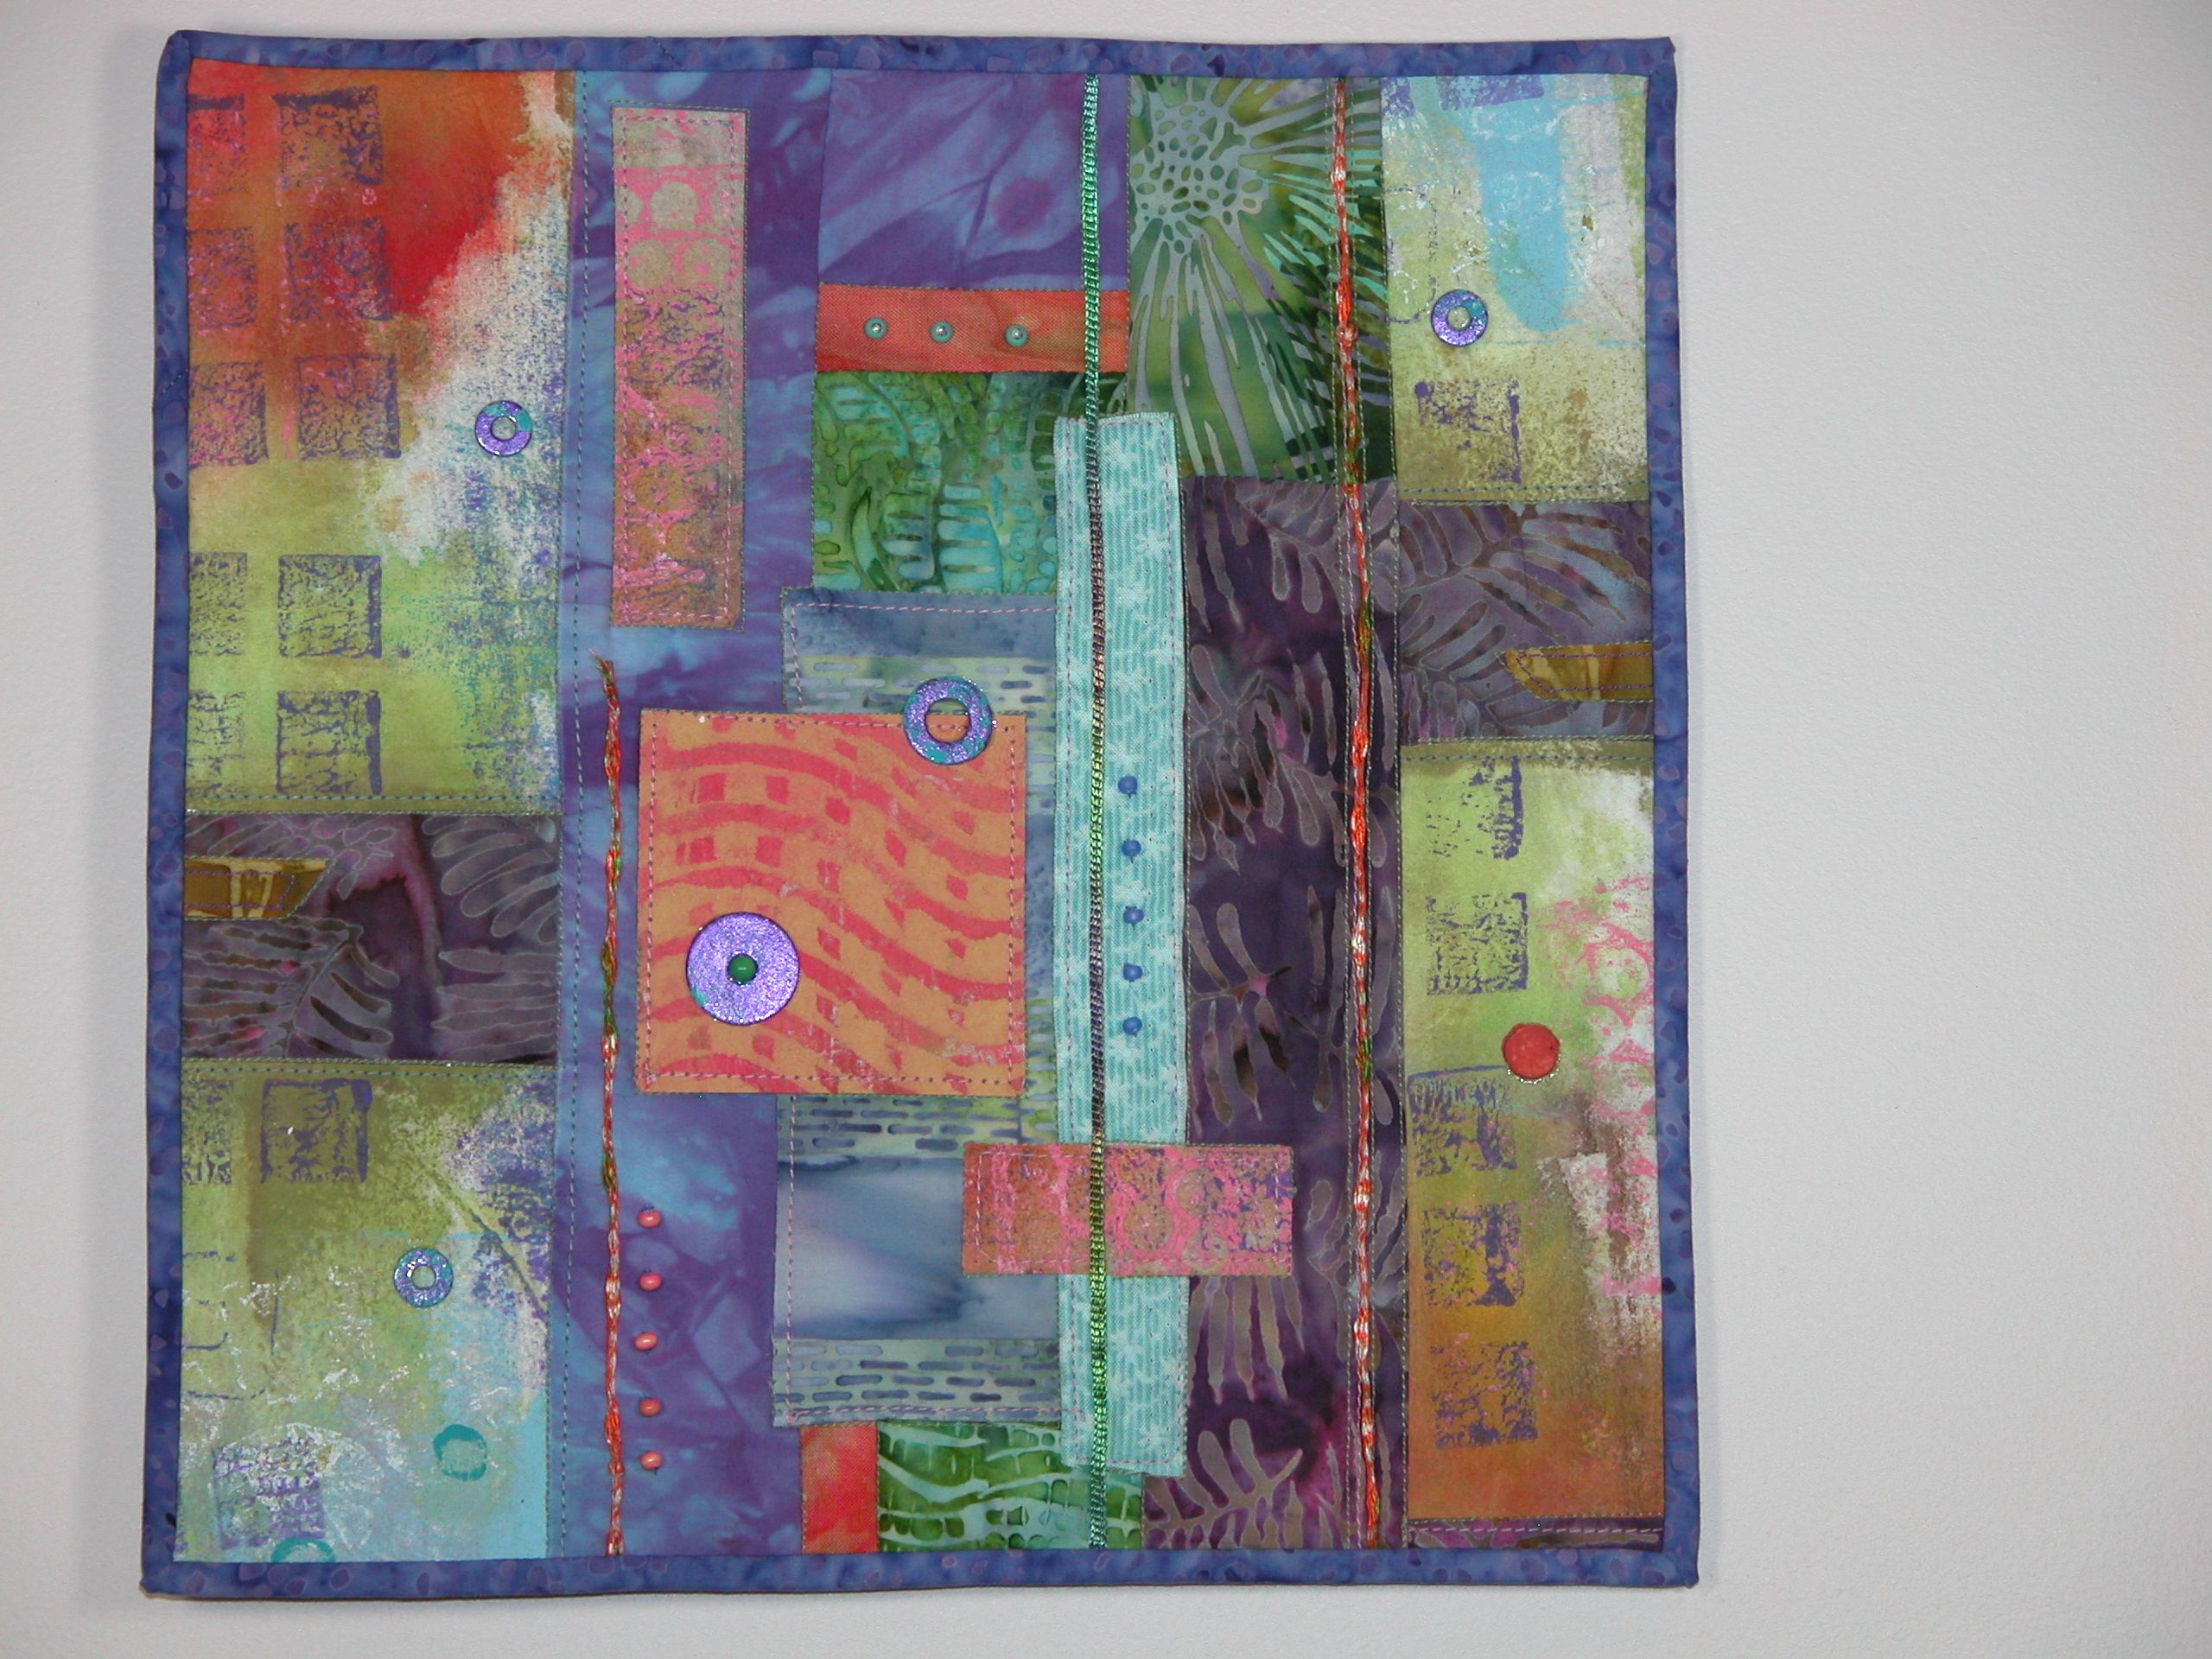 """Exhibited at the International Quilt Study Center March 2014 12""""x 12"""" collage painted, mono printed, hand and machine stitched and embellished with warshers and beads"""